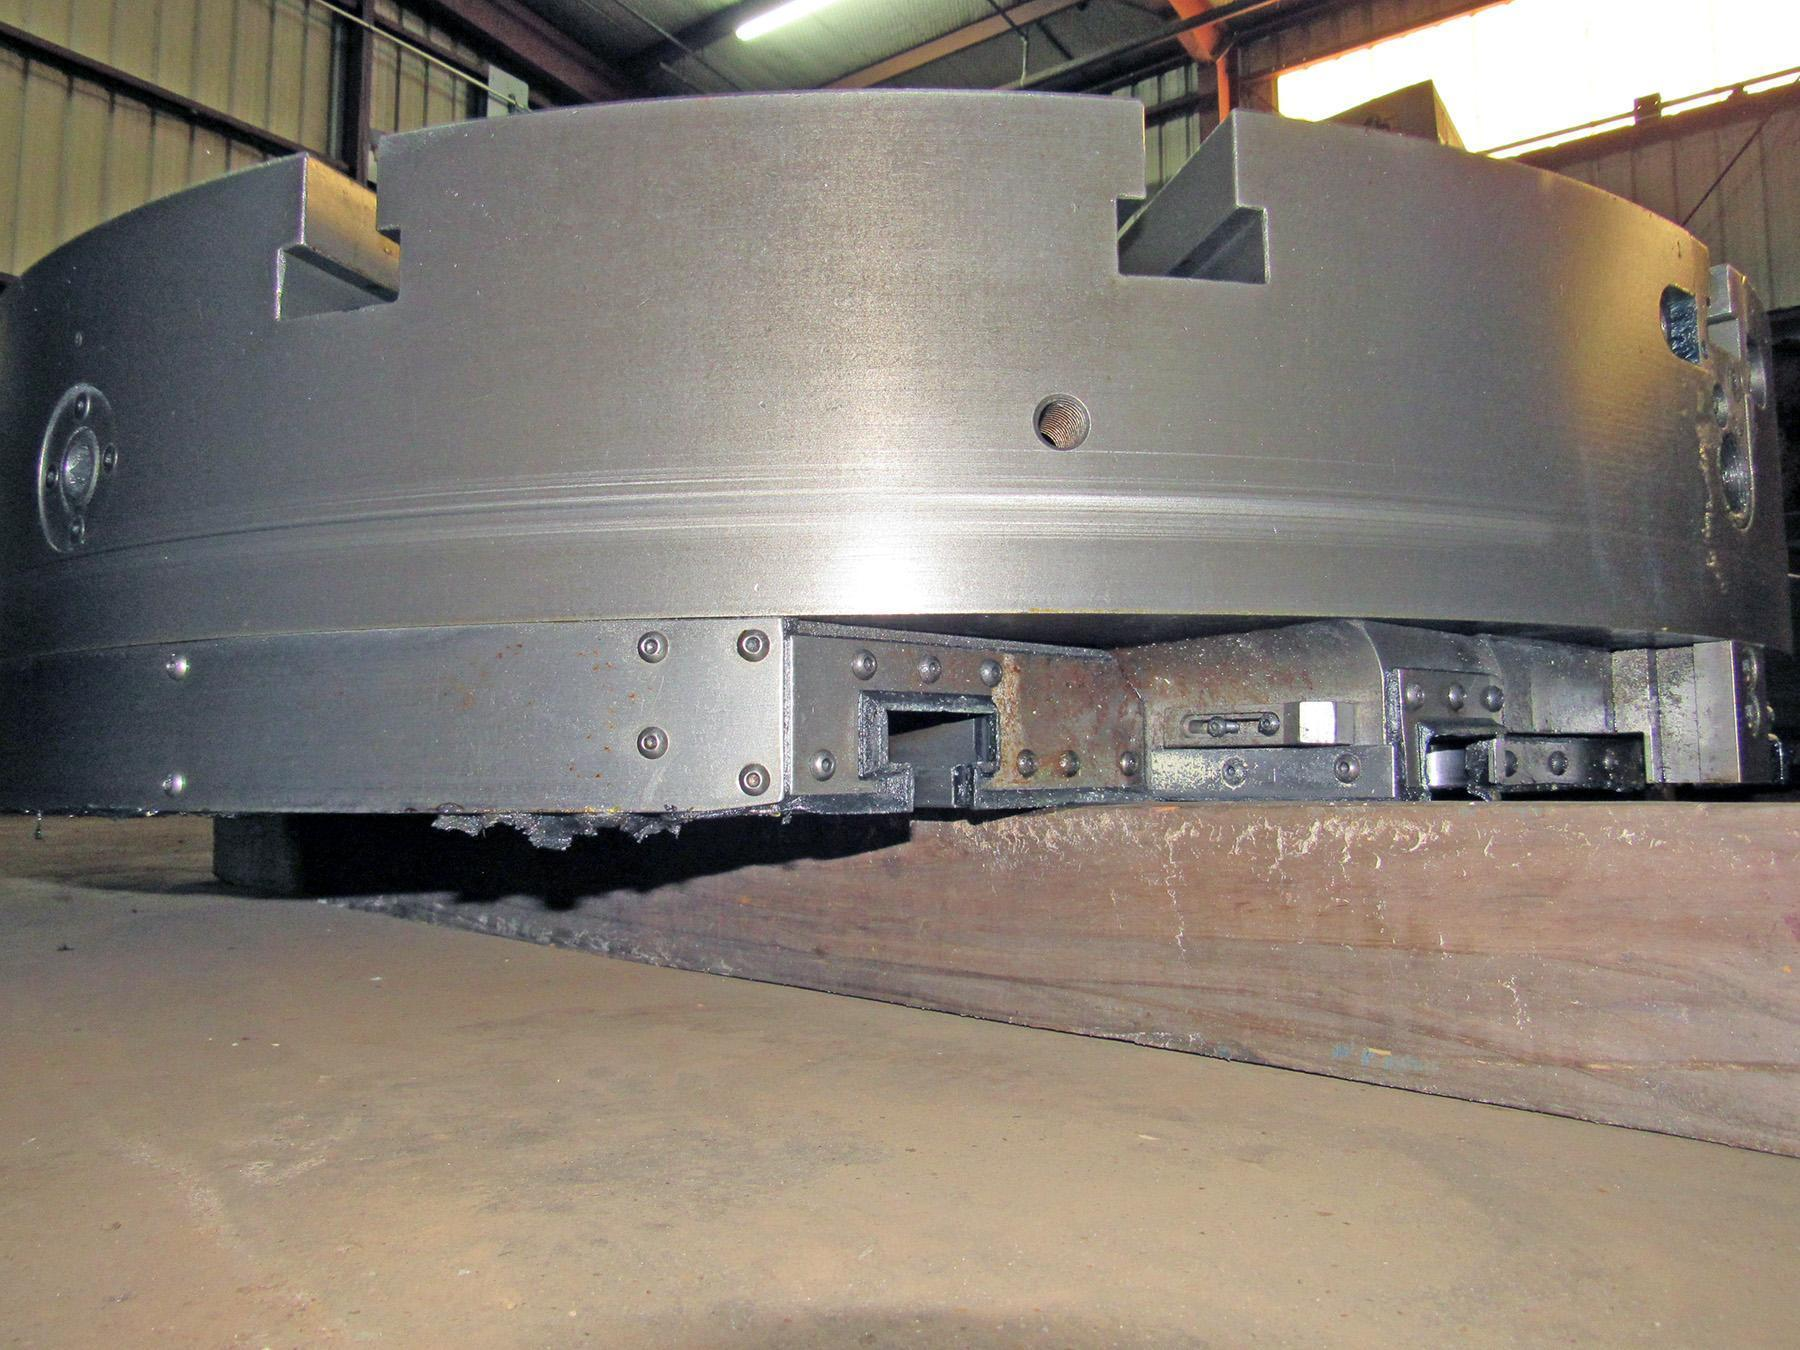 """USED, 48"""" 3-JAW CHUCK FROM GIDDINGS & LEWIS VTC 48 CNC VERTICAL BORING MILL"""